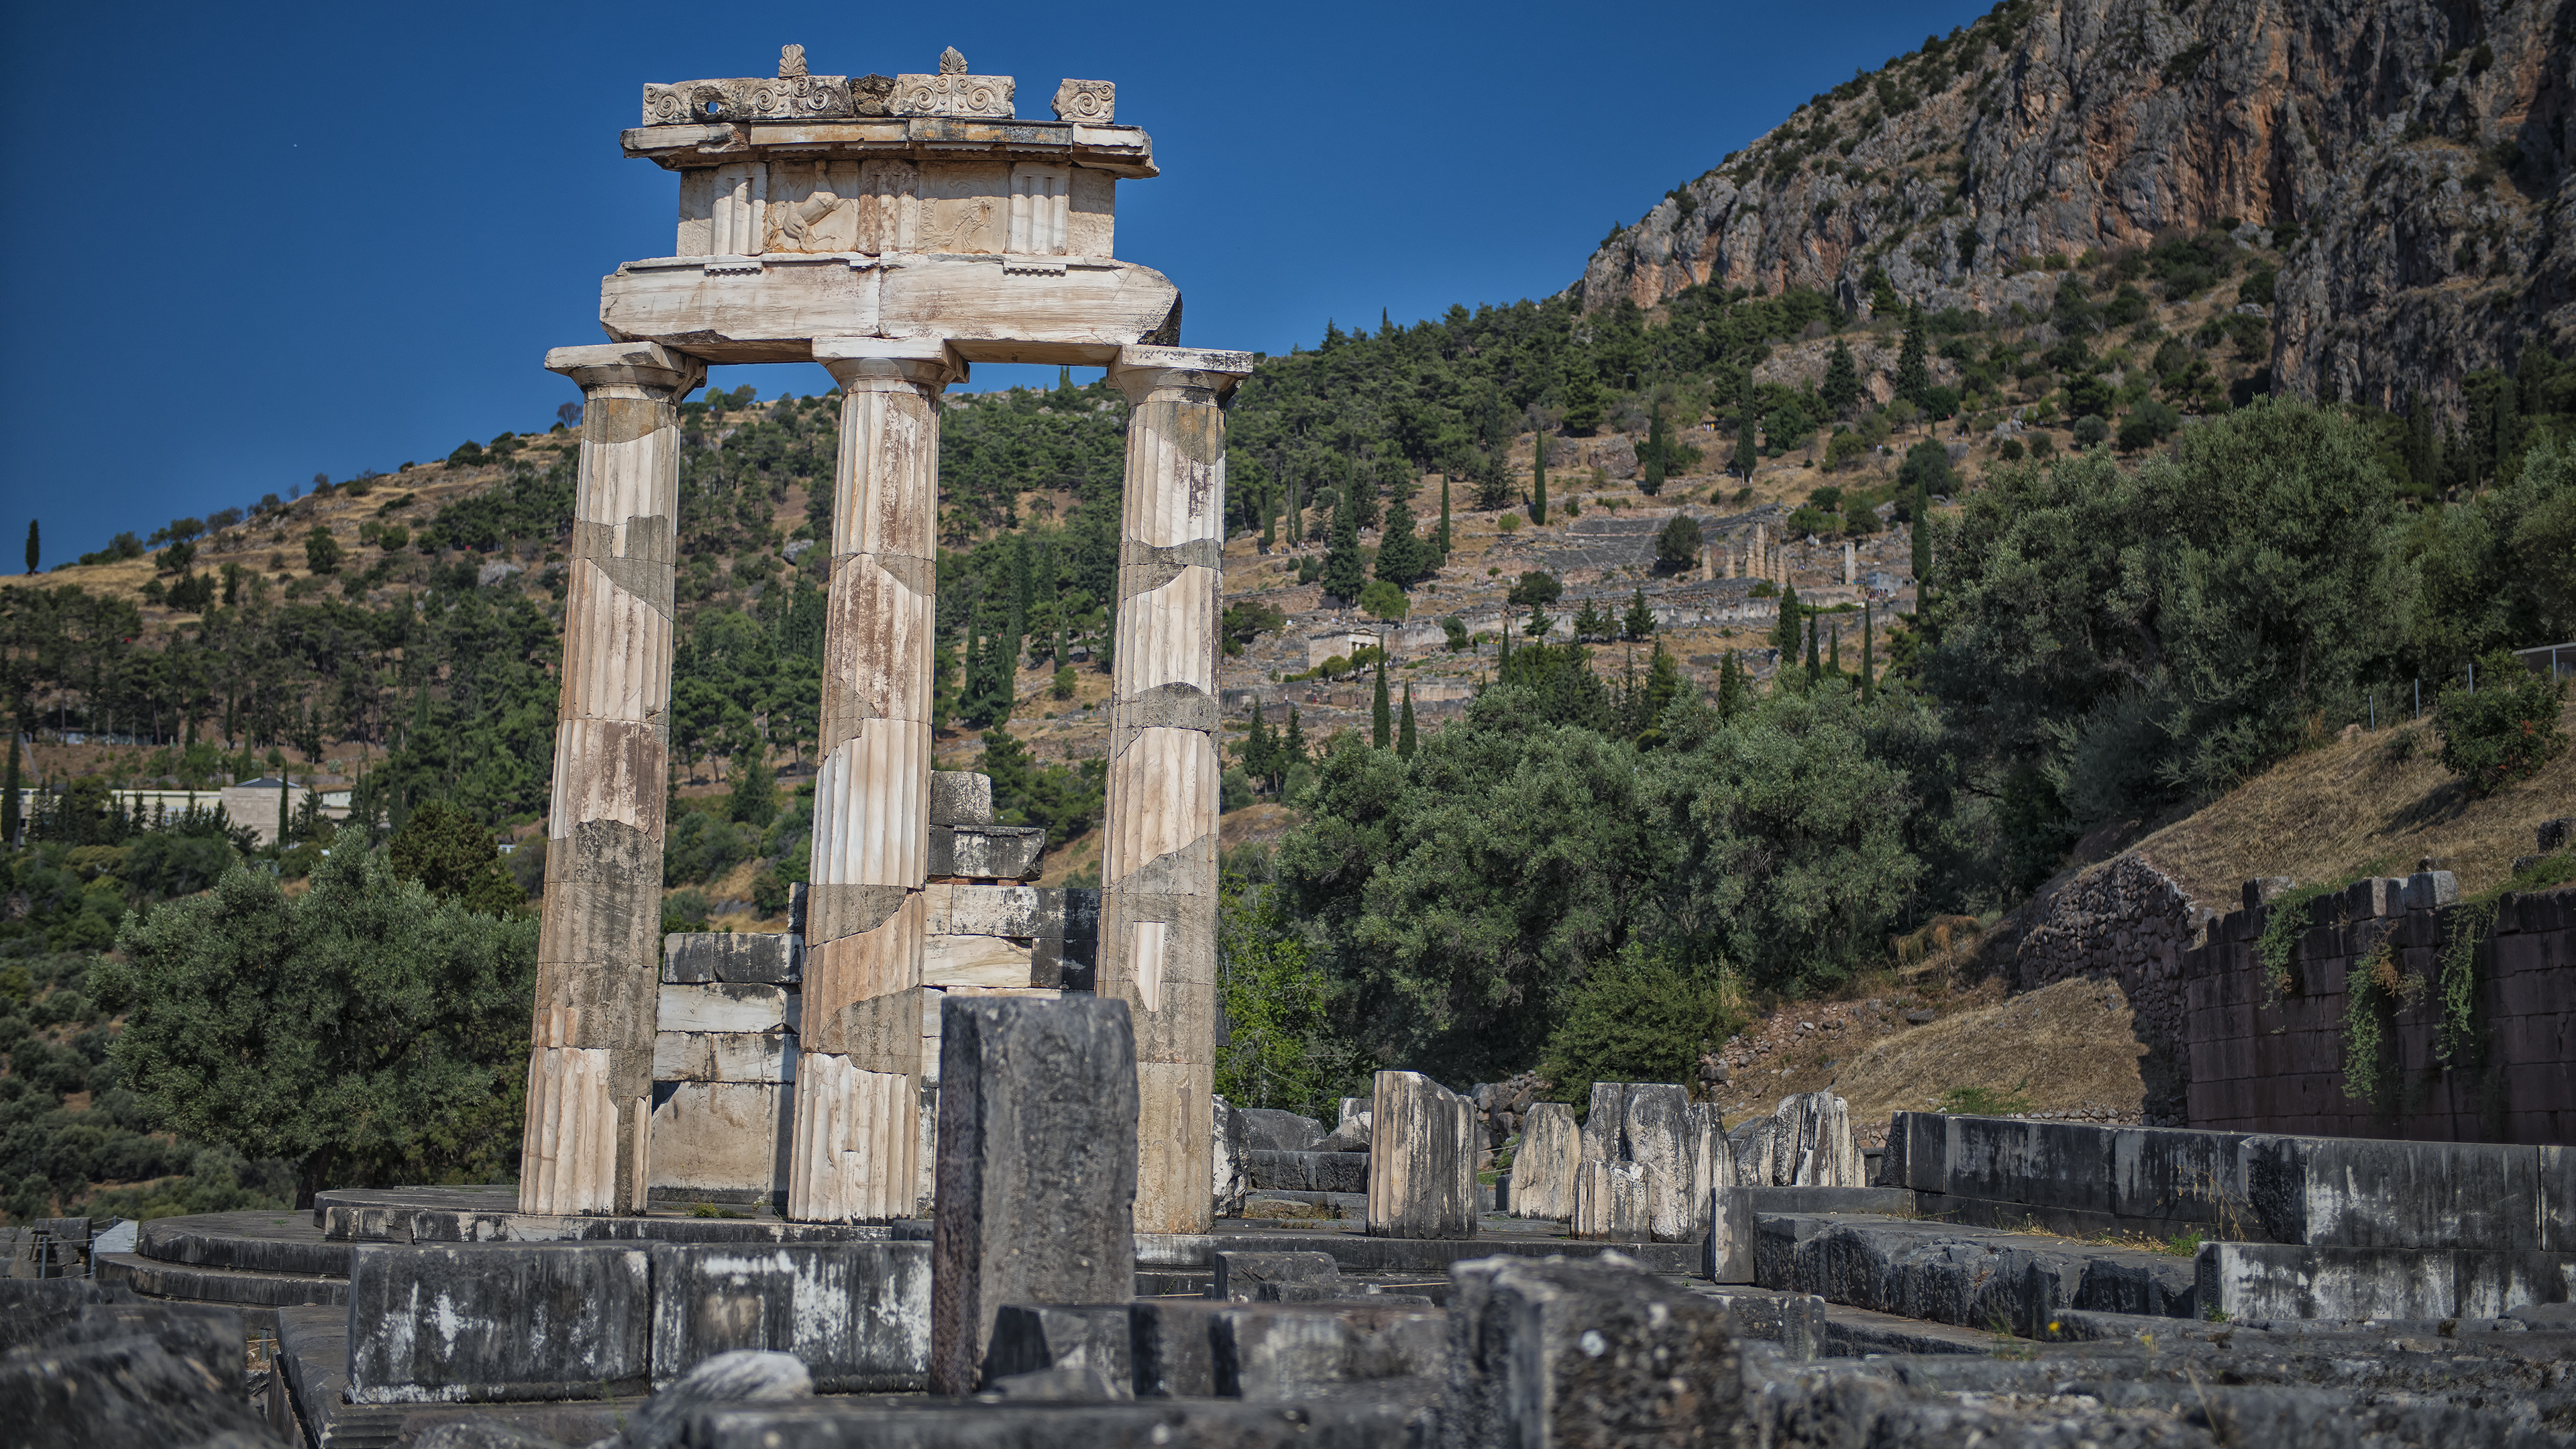 The Temple of Athena Pronaia